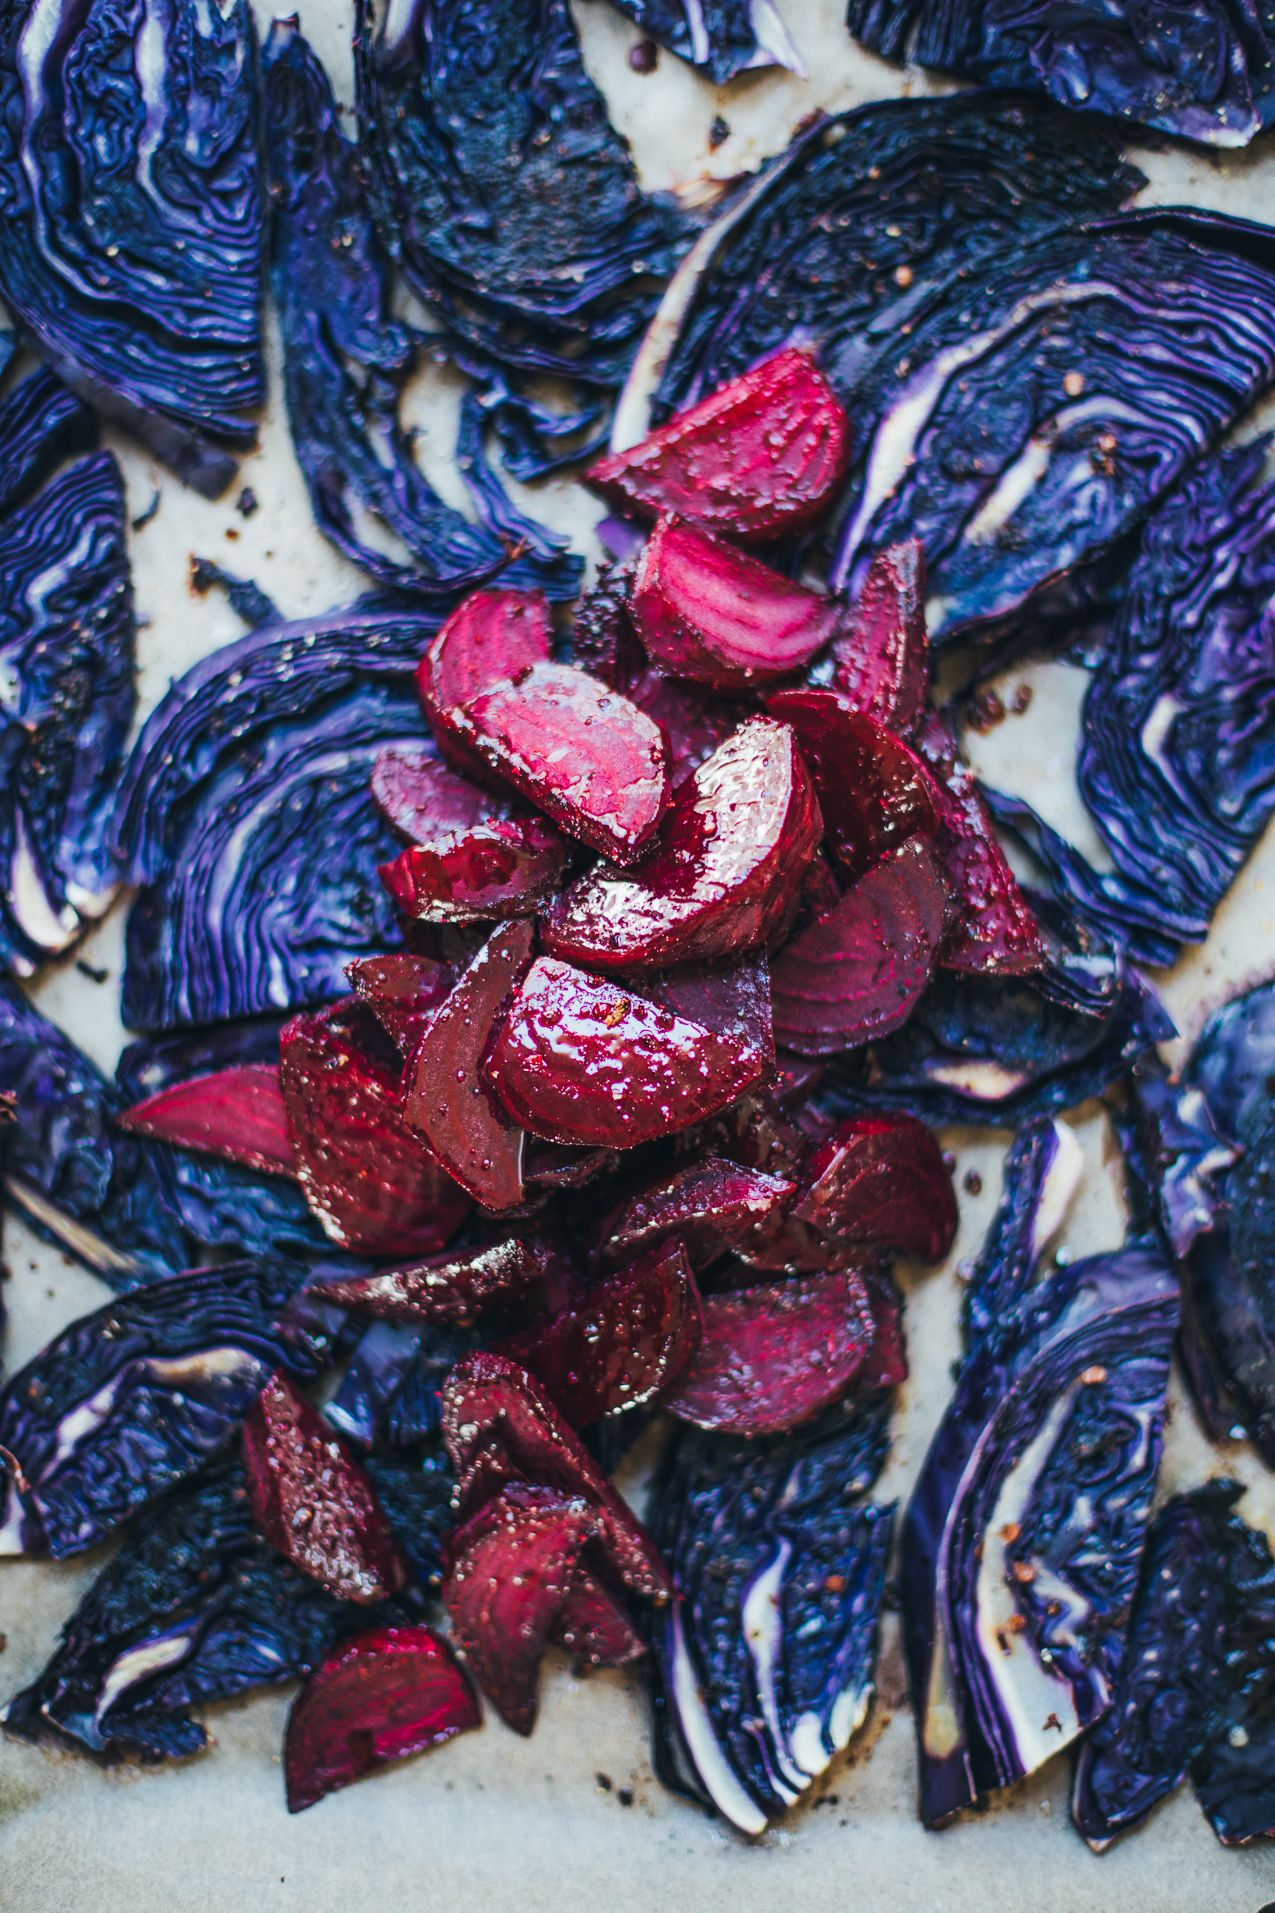 Get the recipe for this warm, roasted red cabbage and beet salad tossed with salty tamari, tangy lime, chickpeas, macadamia nuts and sunflower seed butter.